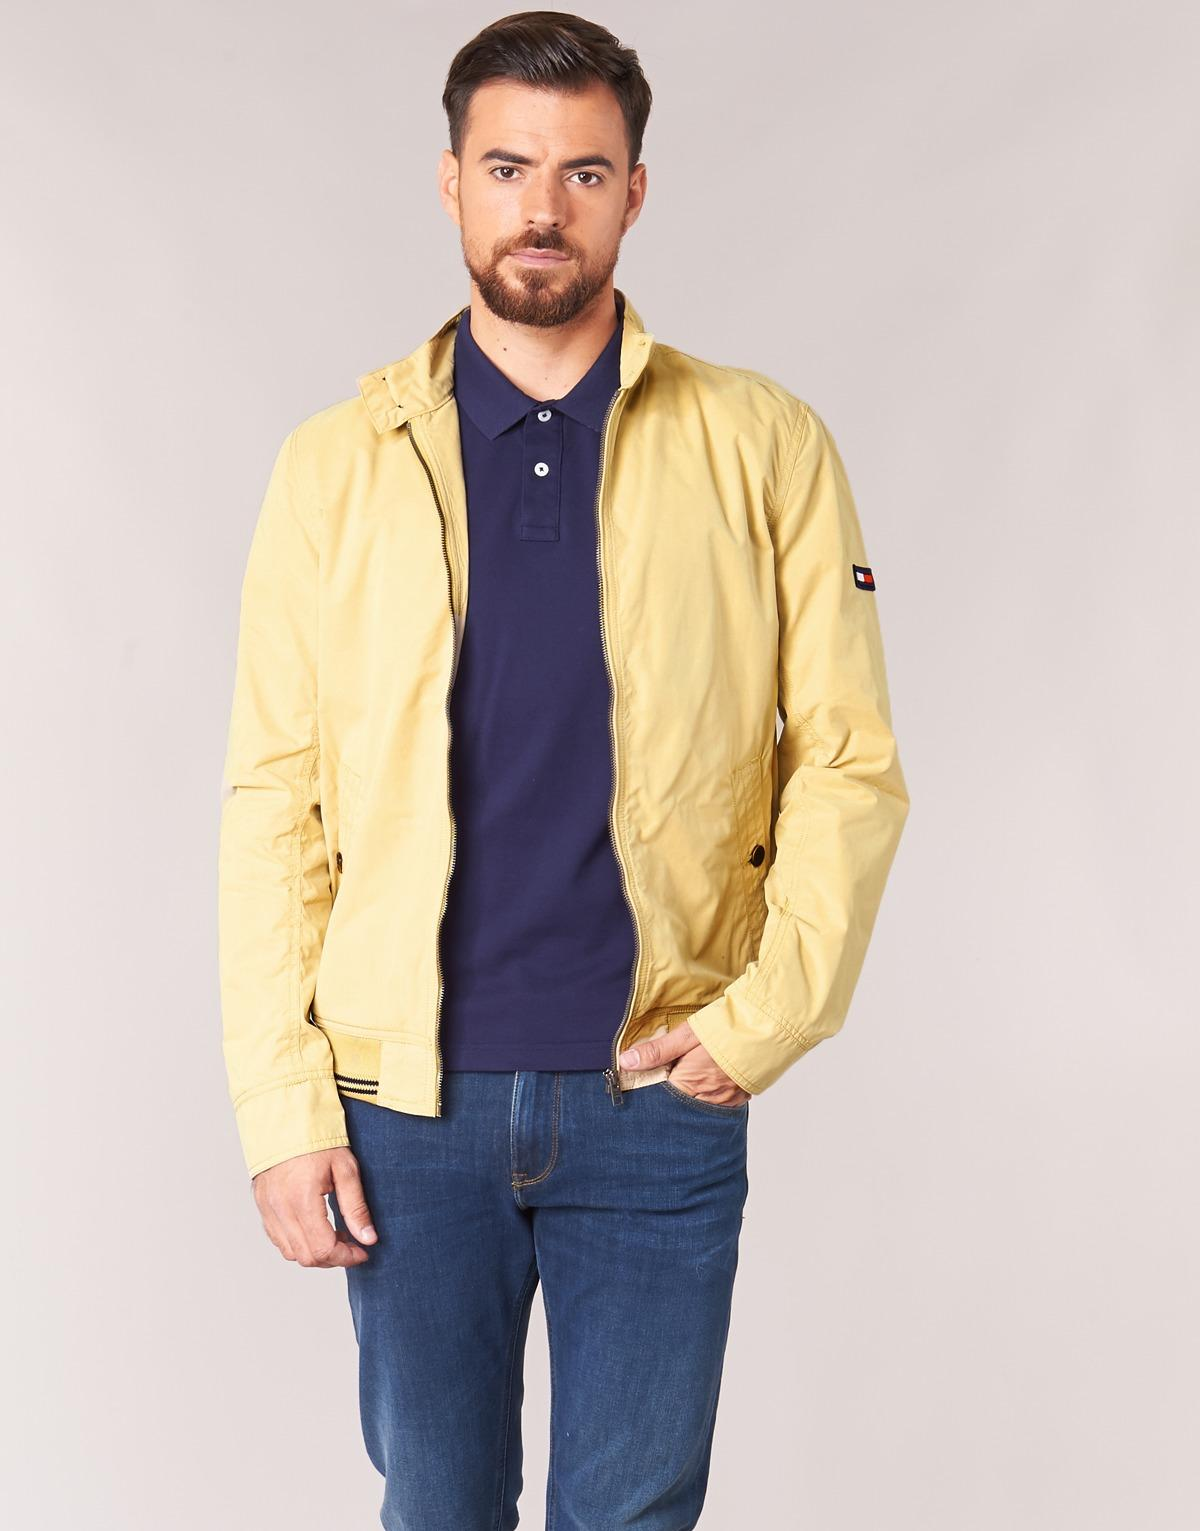 2aac81a1788 Tommy Hilfiger Thdm Basic Harrington Jacket in Natural for Men - Lyst